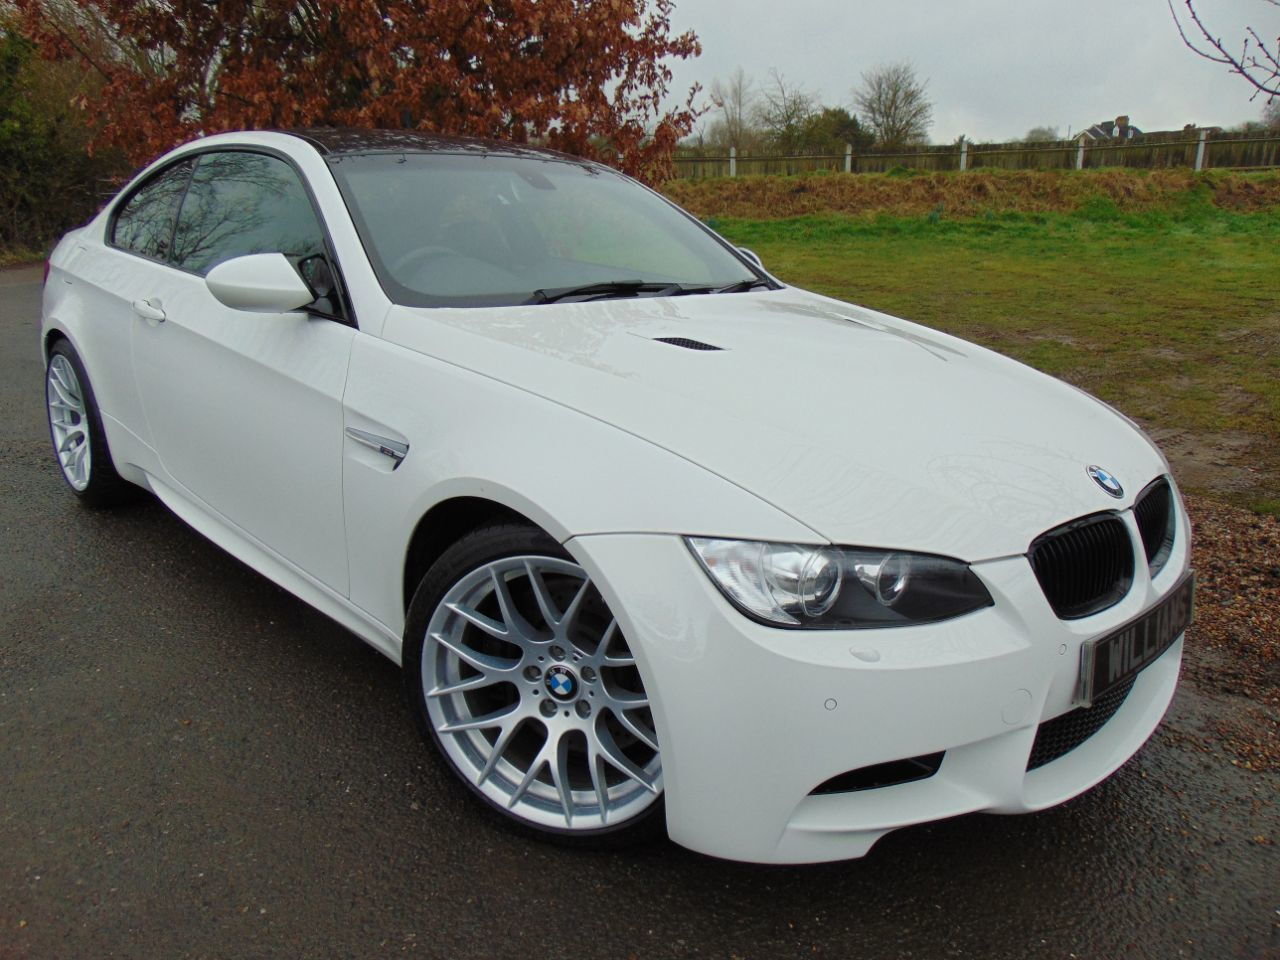 8bddcc1ebf 2010 BMW M3 4.0 M3 2dr DCT (Competition Pack!